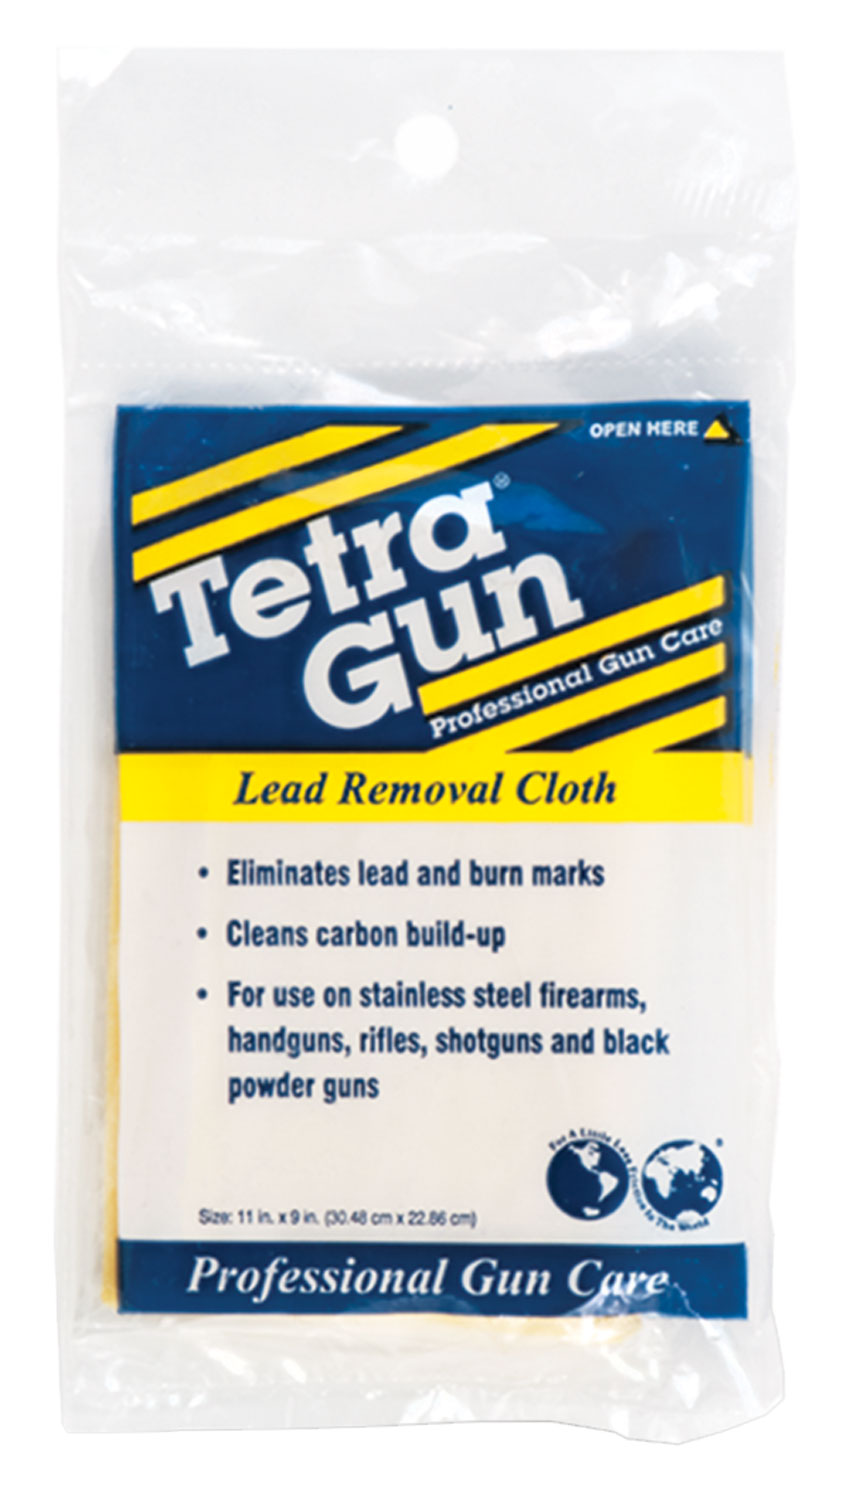 Tetra Gun Lead Removal Cleaning Cloth 10